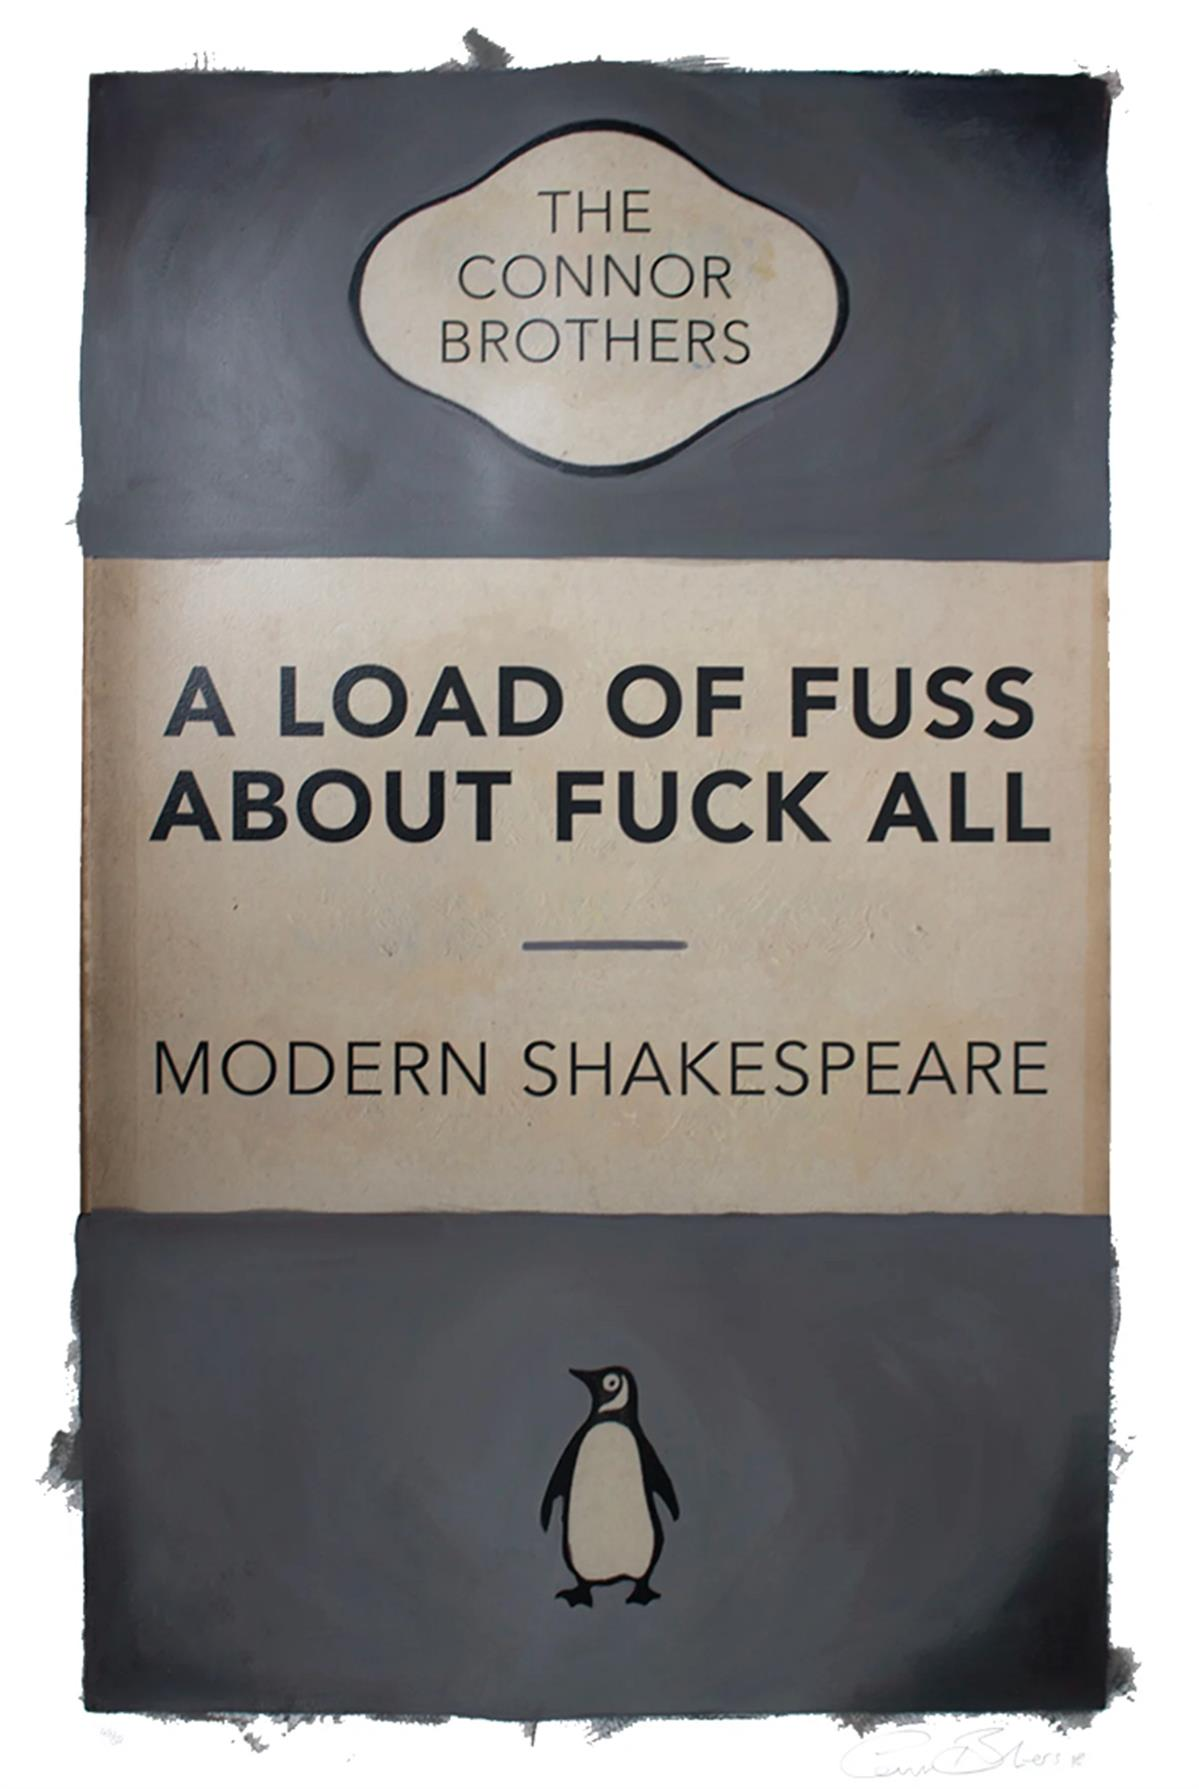 A Load of Fuss (Grey) by The Connor Brothers